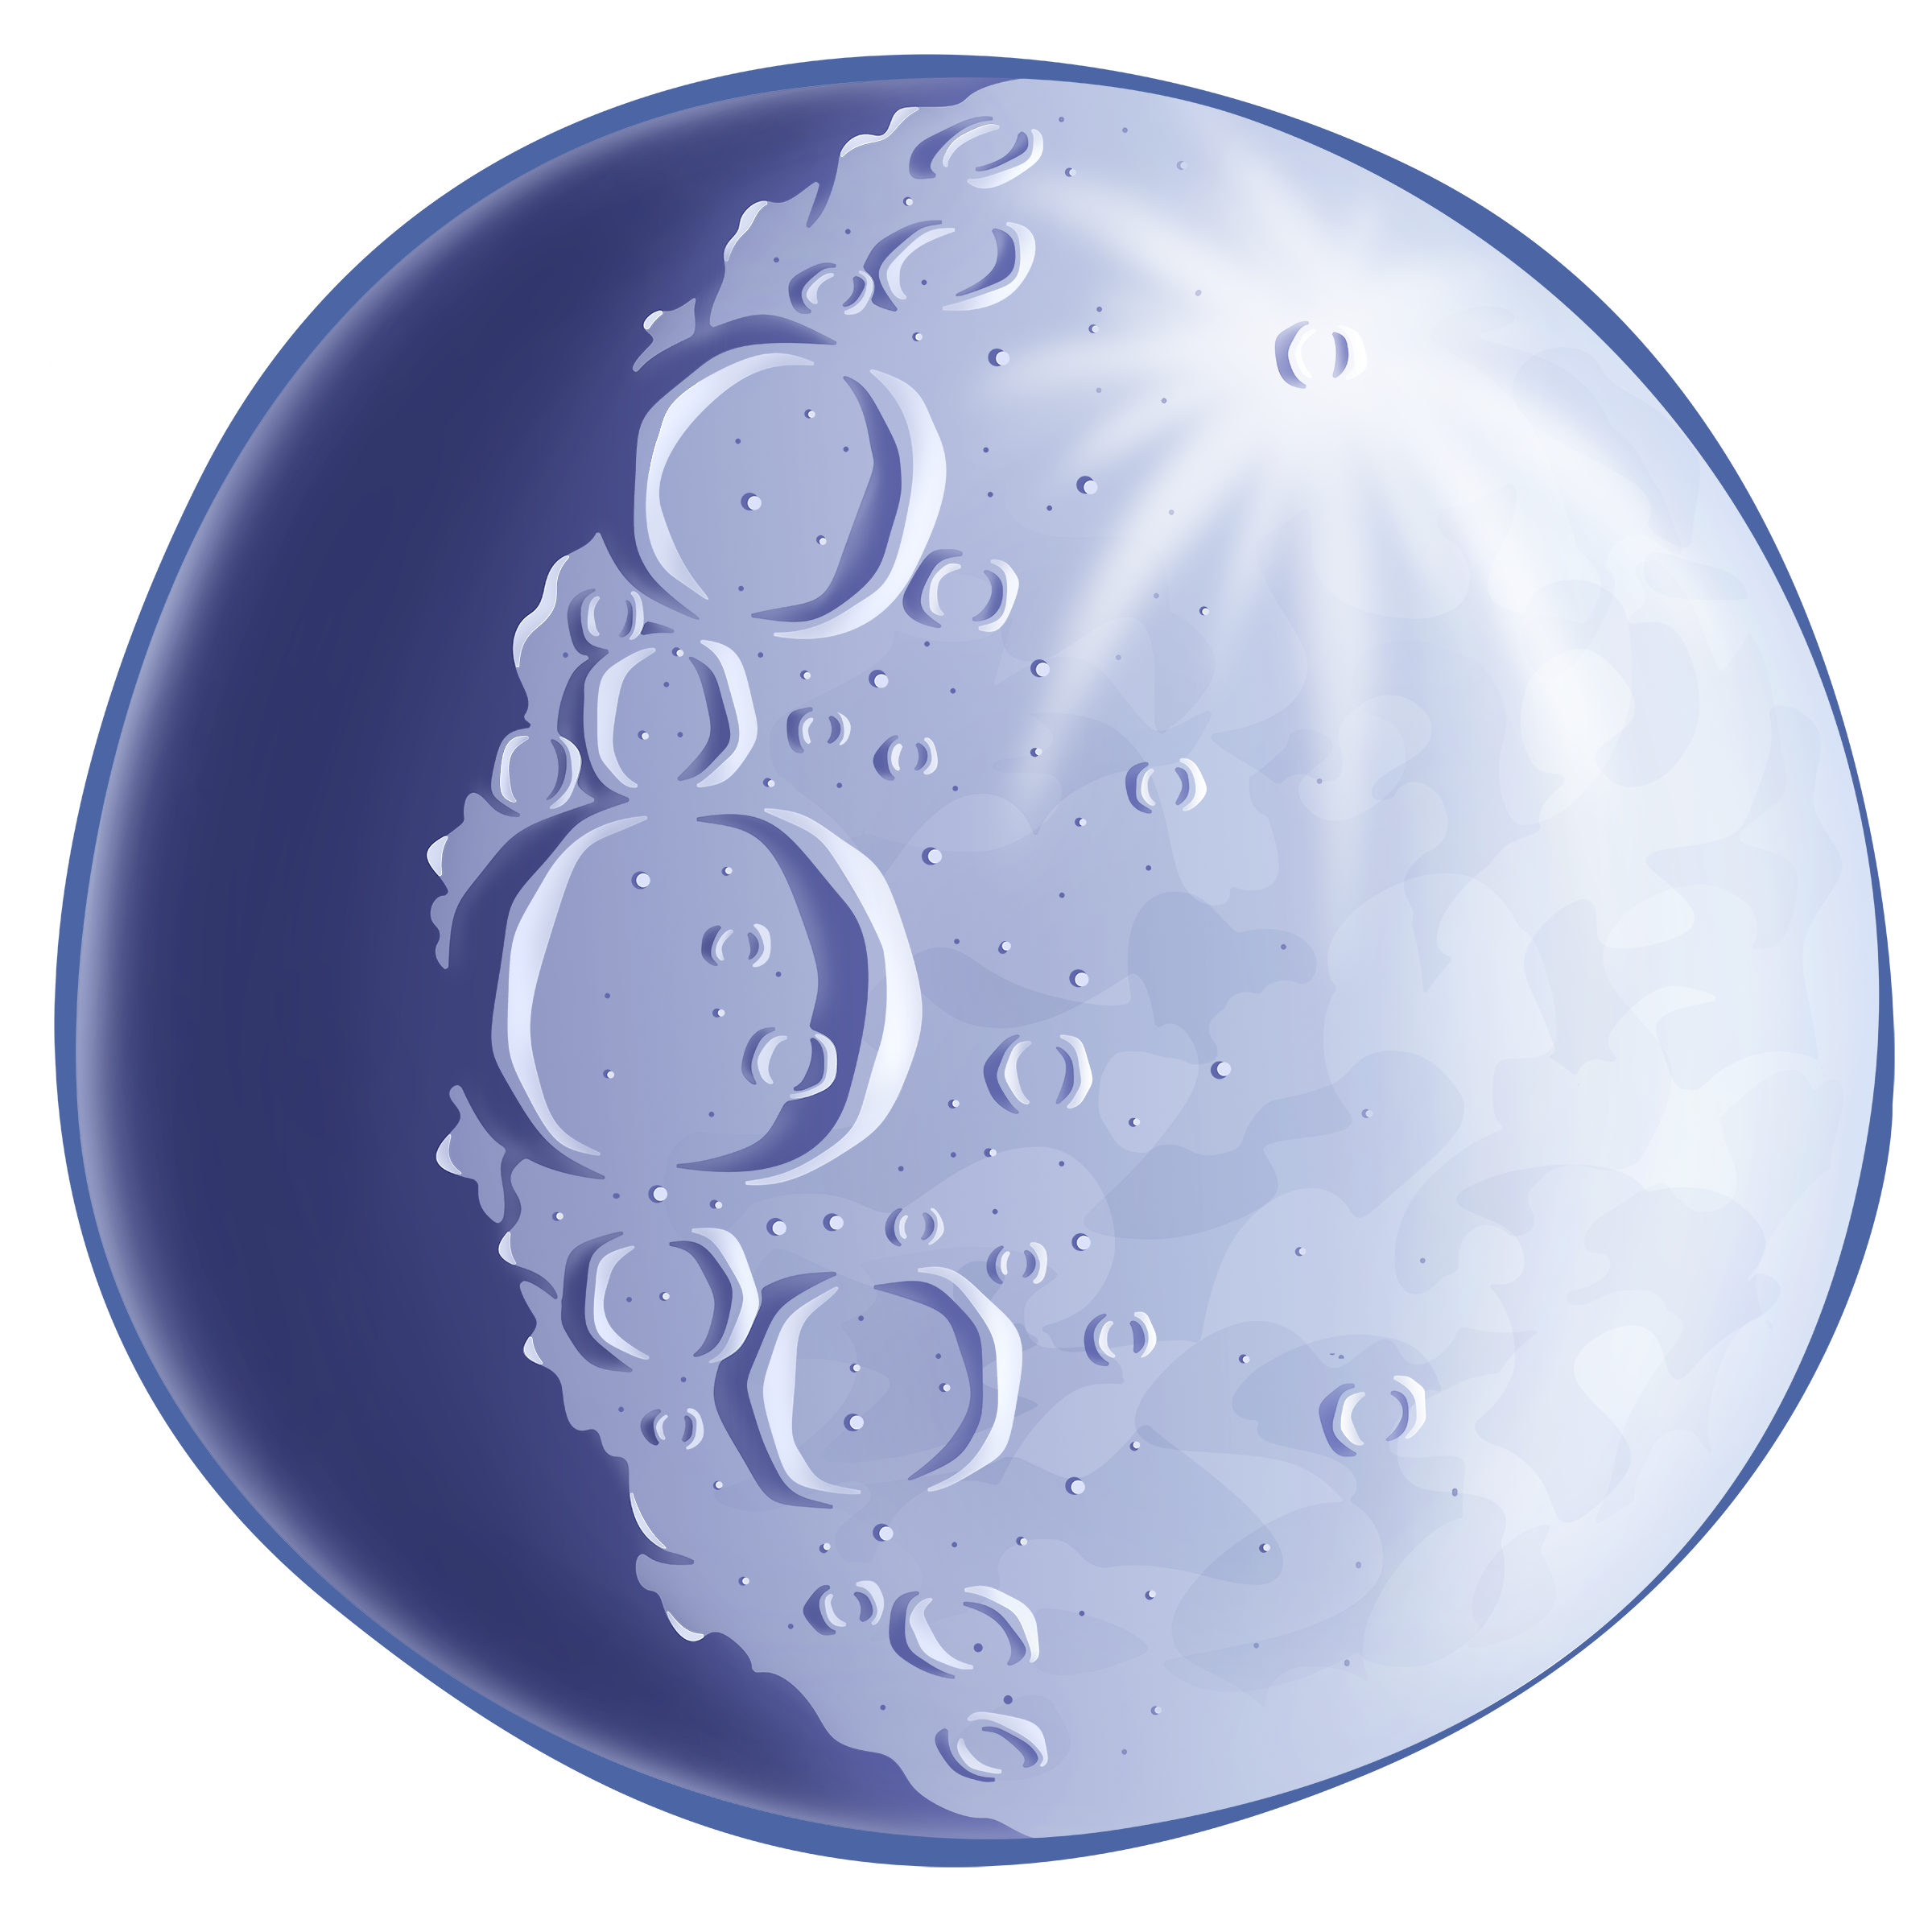 Planeten clipart starveyors. Moon png vbs galactic